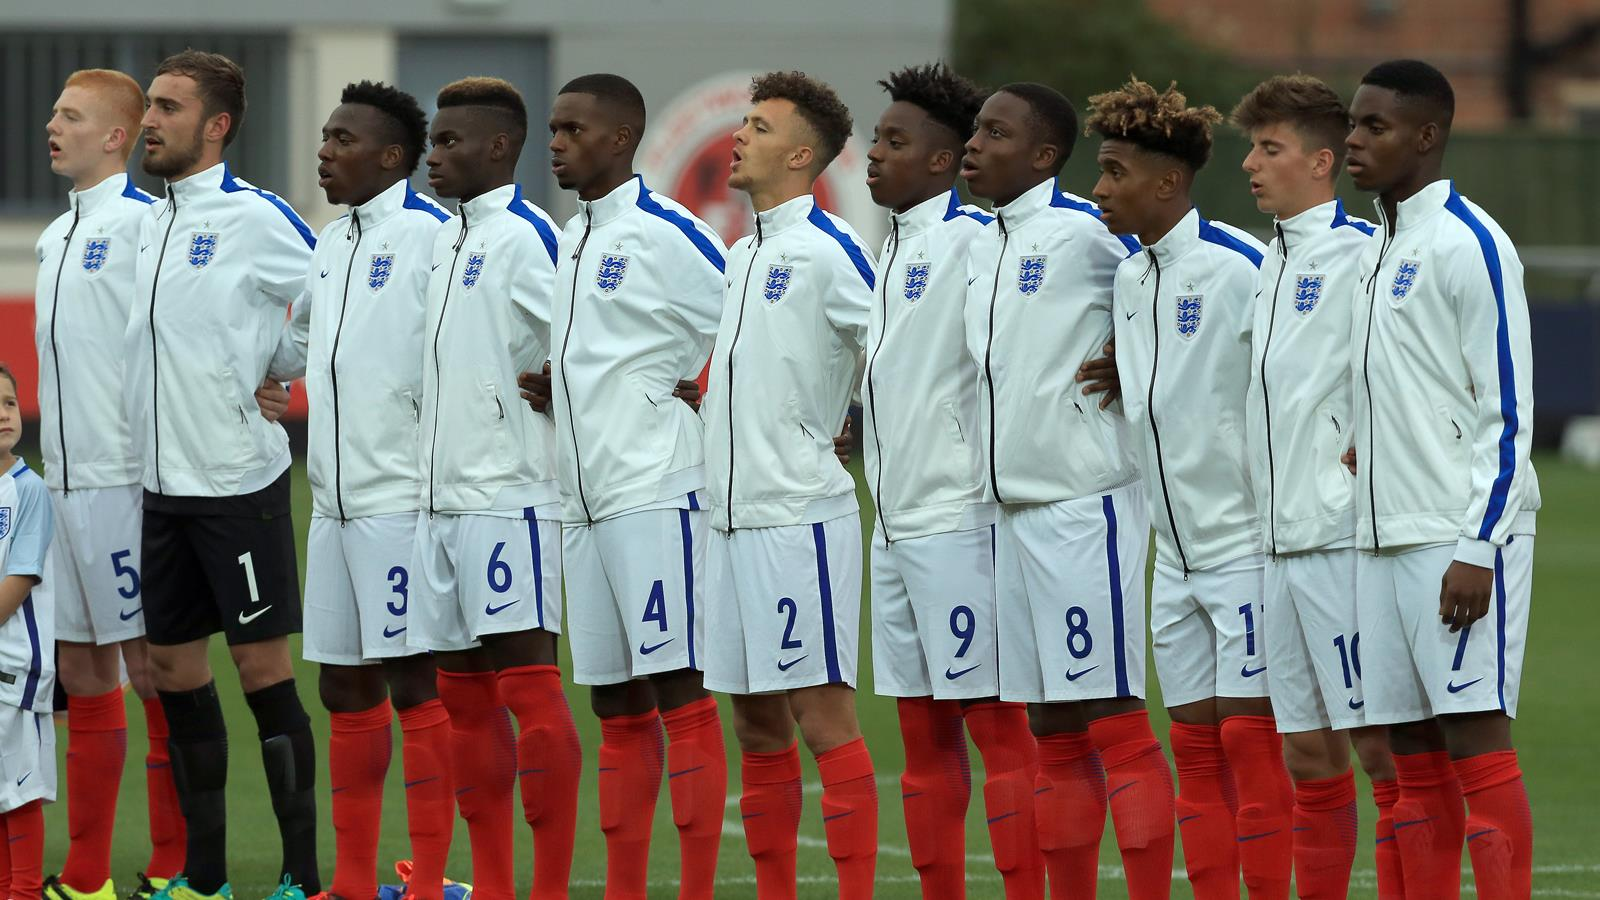 ENGLAND UNDER-18S TO PLAY POLAND AT STEVENAGE NEXT MONTH ...